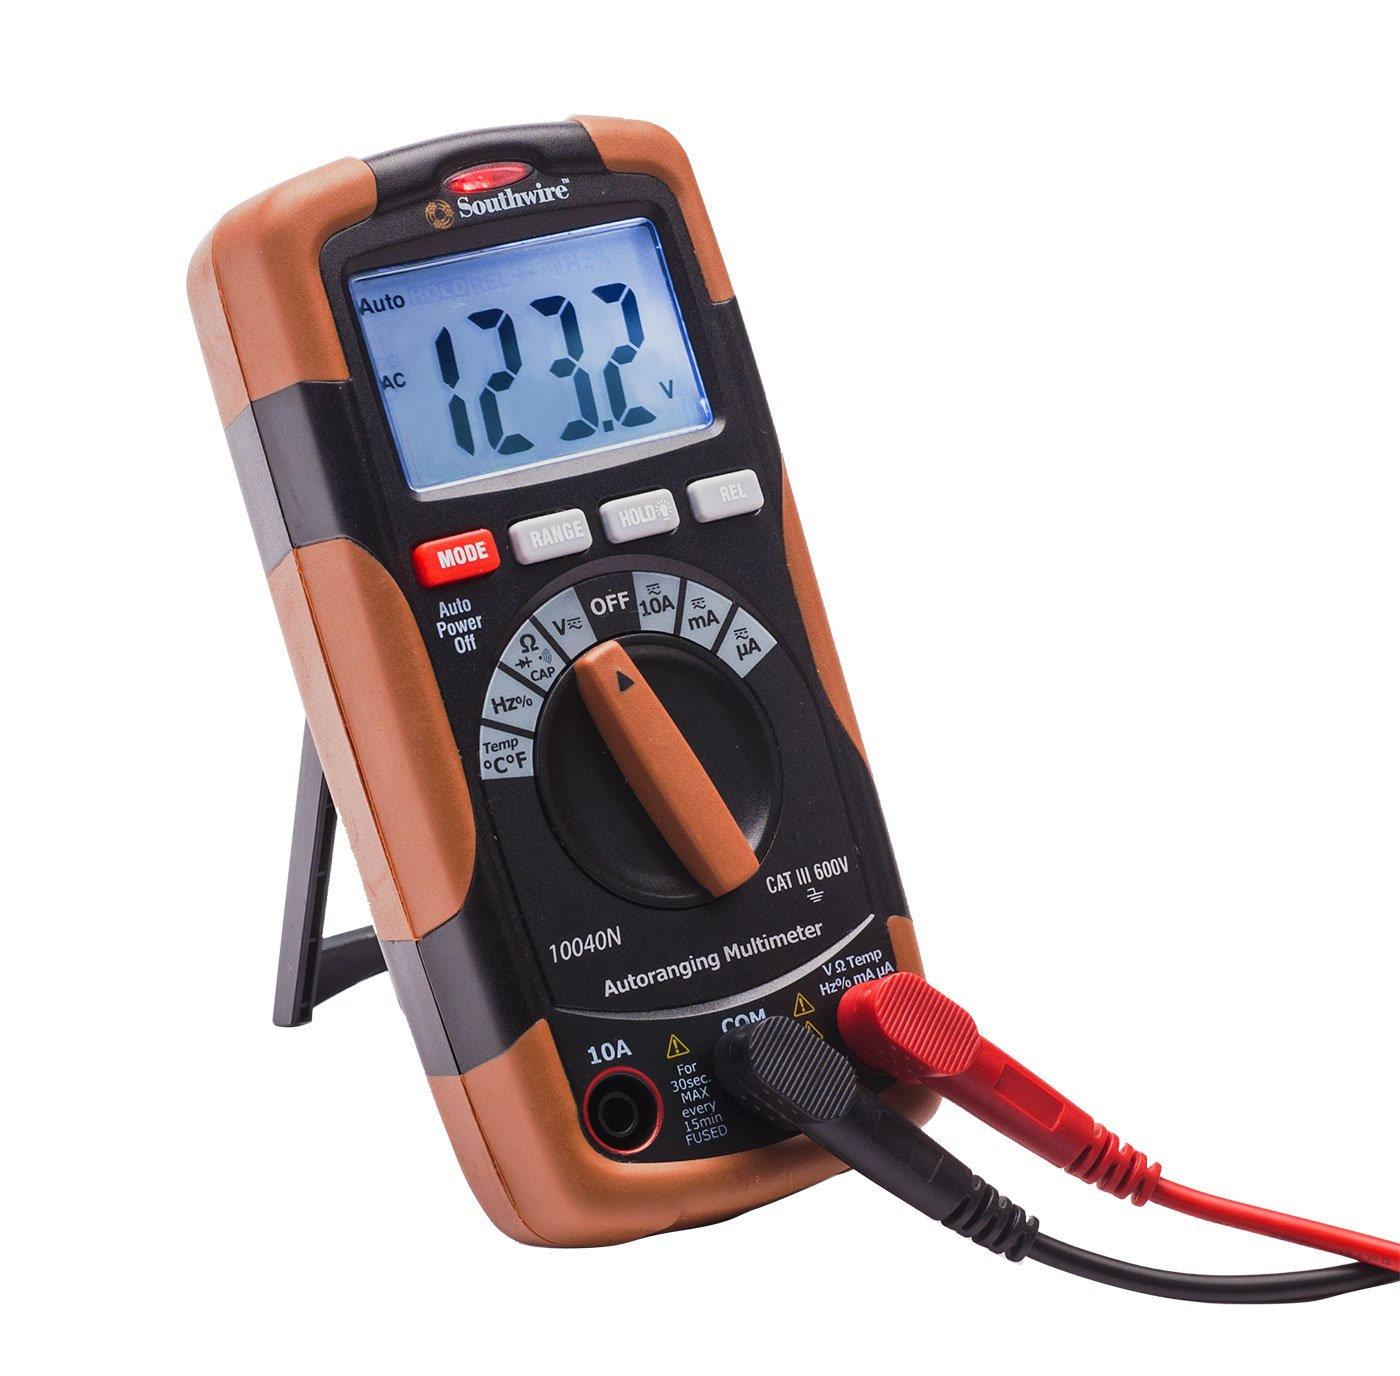 Southwire Tools & Equipment 10040N Auto-Ranging Digital Multimeter, 12 Functions by Southwire